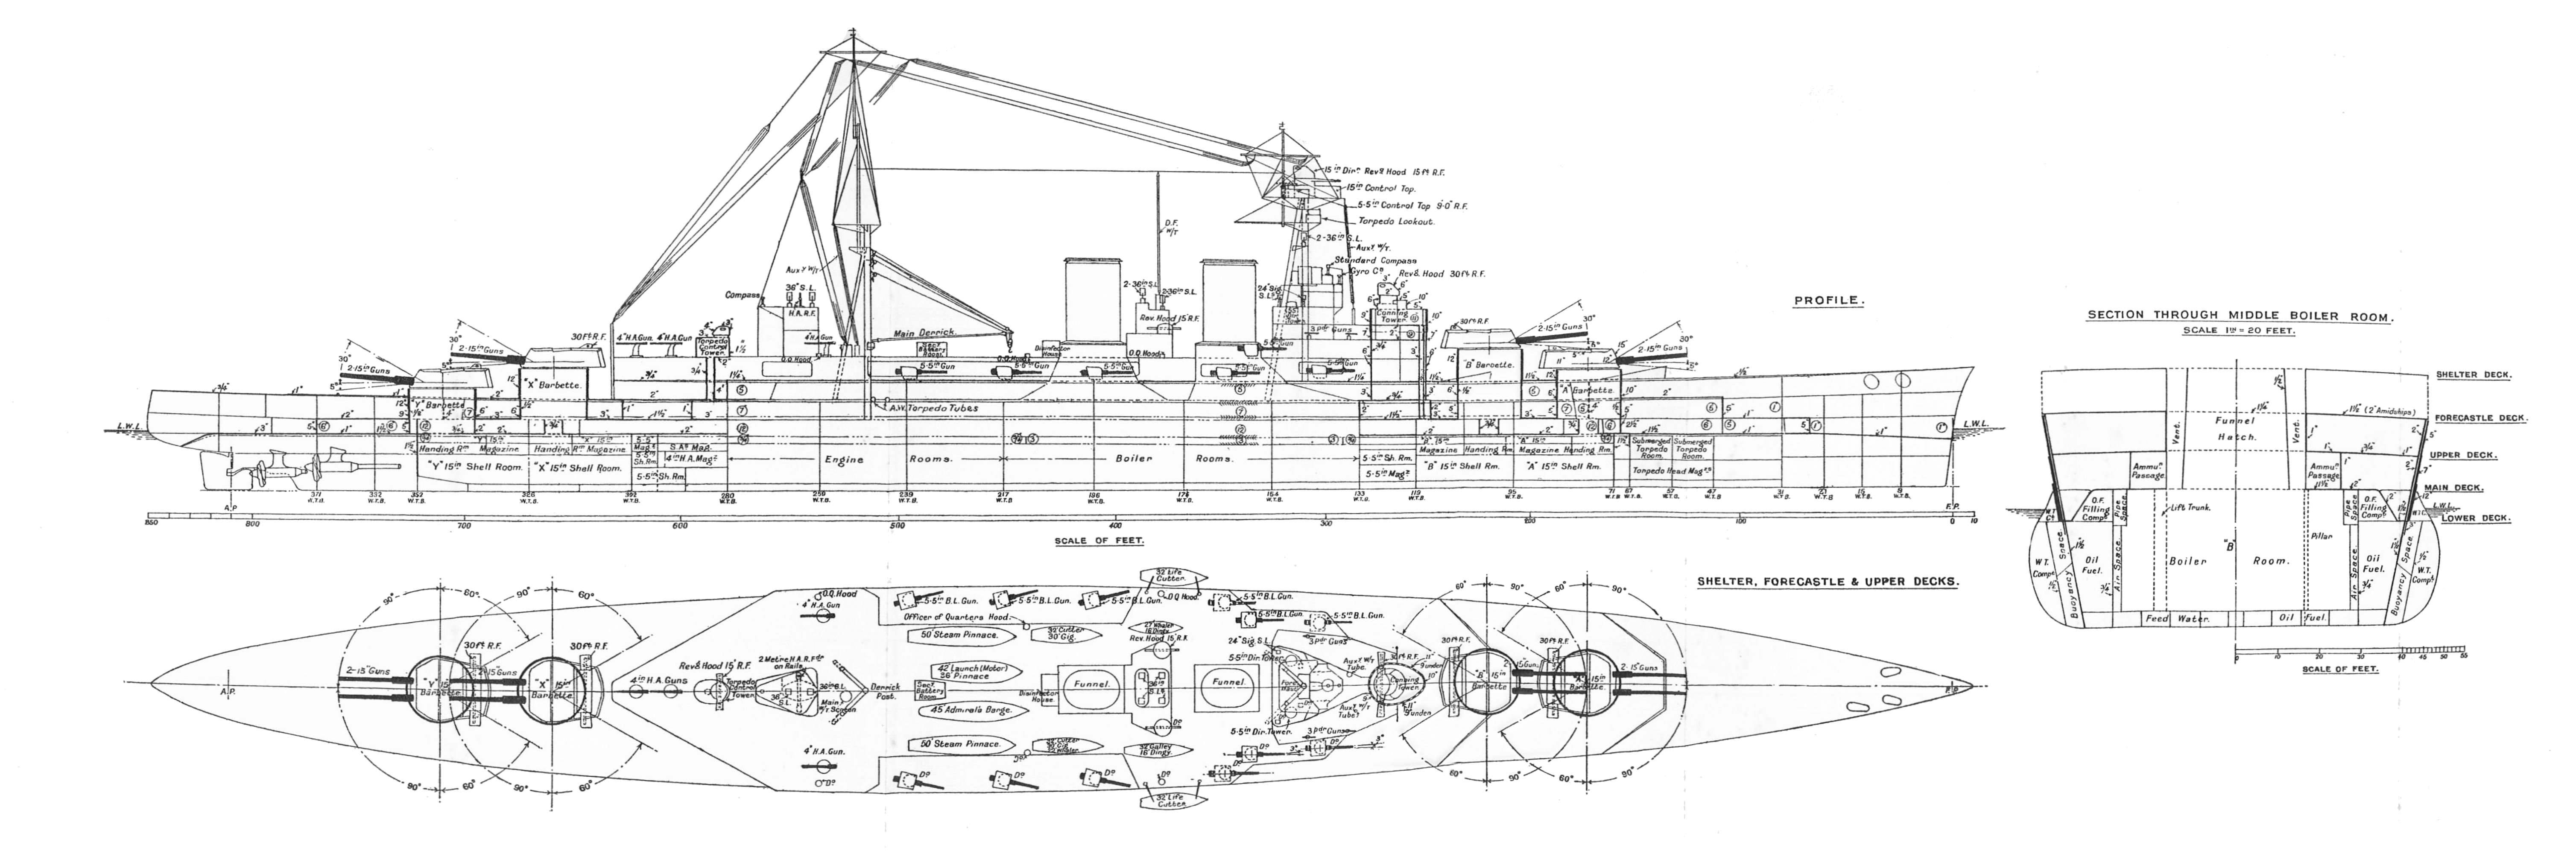 File:HMS Hood, outline and plan (Warships To-day, 1936).jpg - Wikimedia Commons